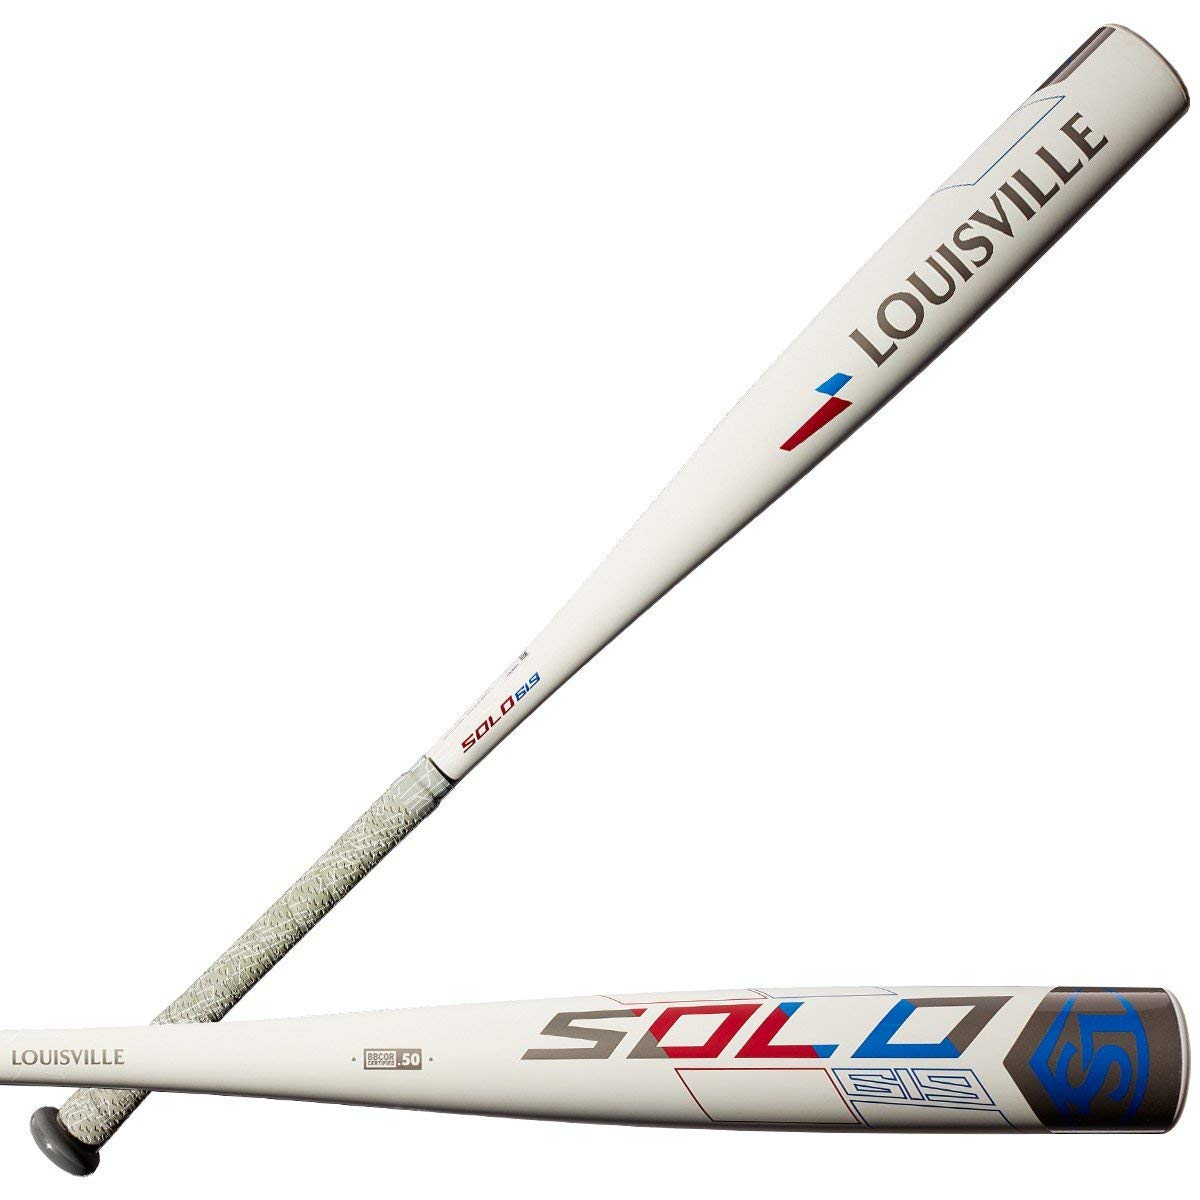 louisville-slugger-2019-solo-619-3-bbcor-baseball-bat-32-inch-29-oz WTLBBS619B332  887768712778 The new Solo 619 brings the speed you need in your